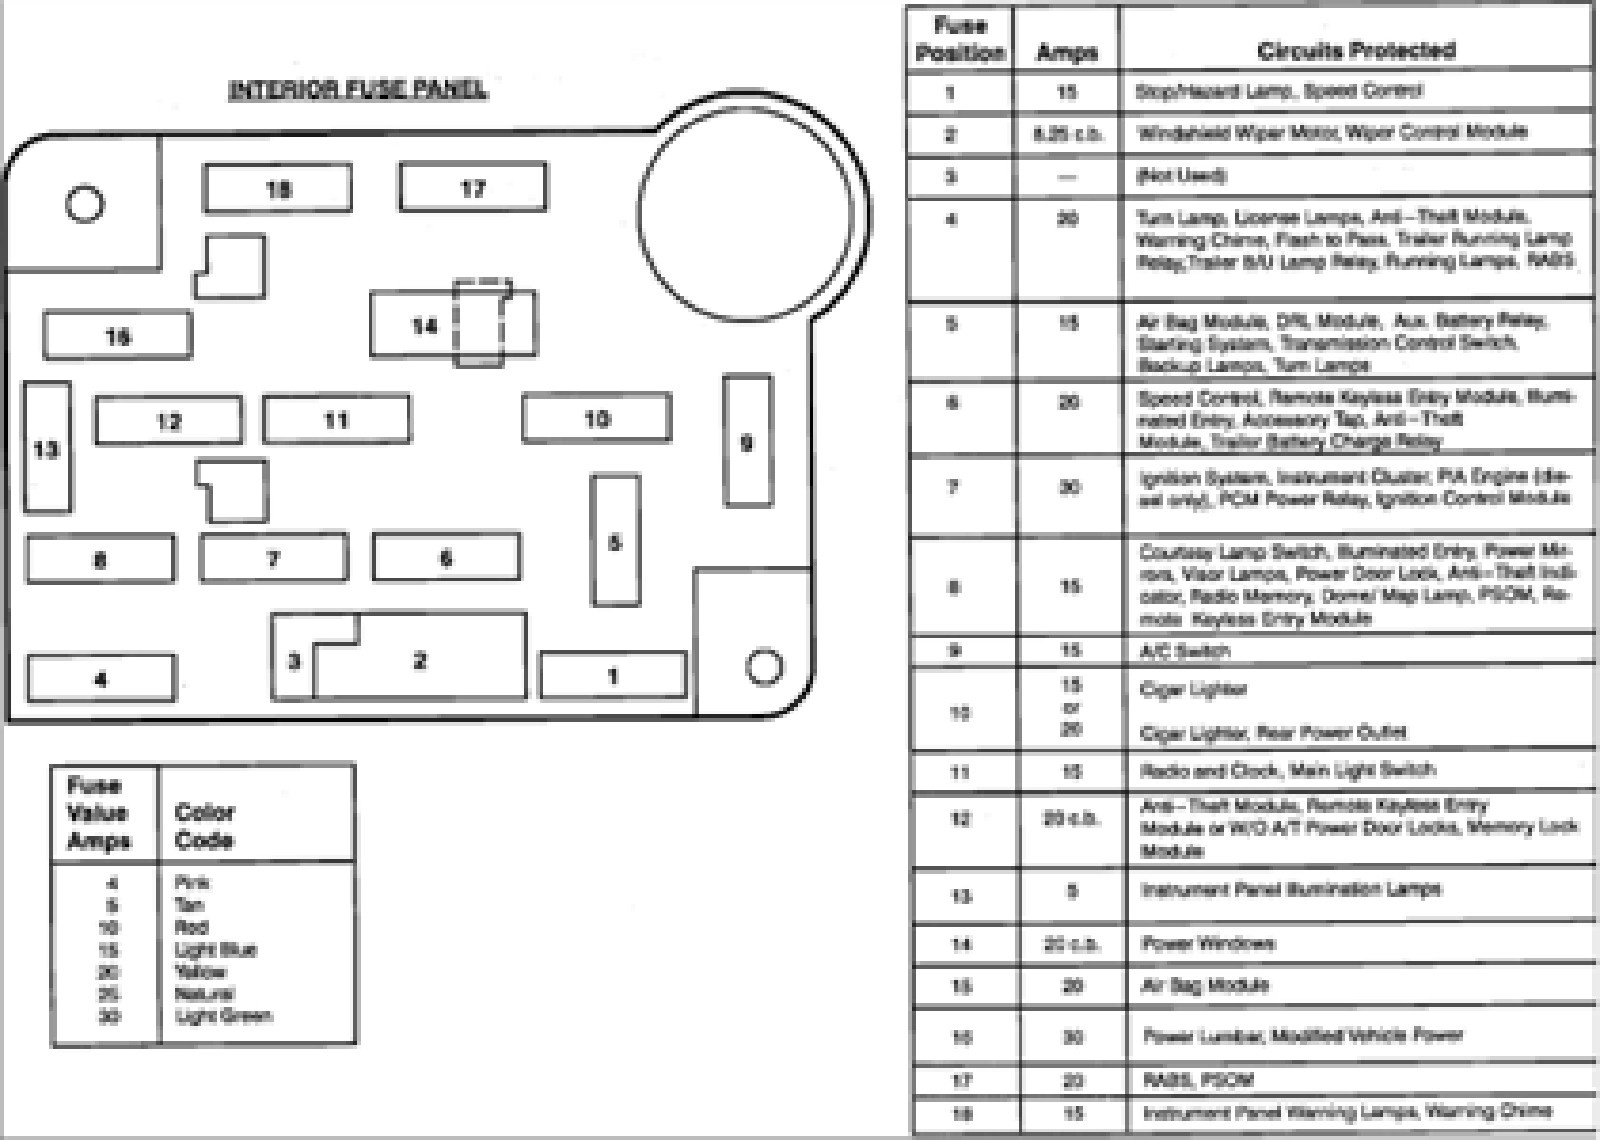 Ford E 150 Questions Fuse Diagram For A 1993 Ford Econoline Van 2007 Ford  Van Fuse Box Diagram Ford Van Fuse Box Diagram